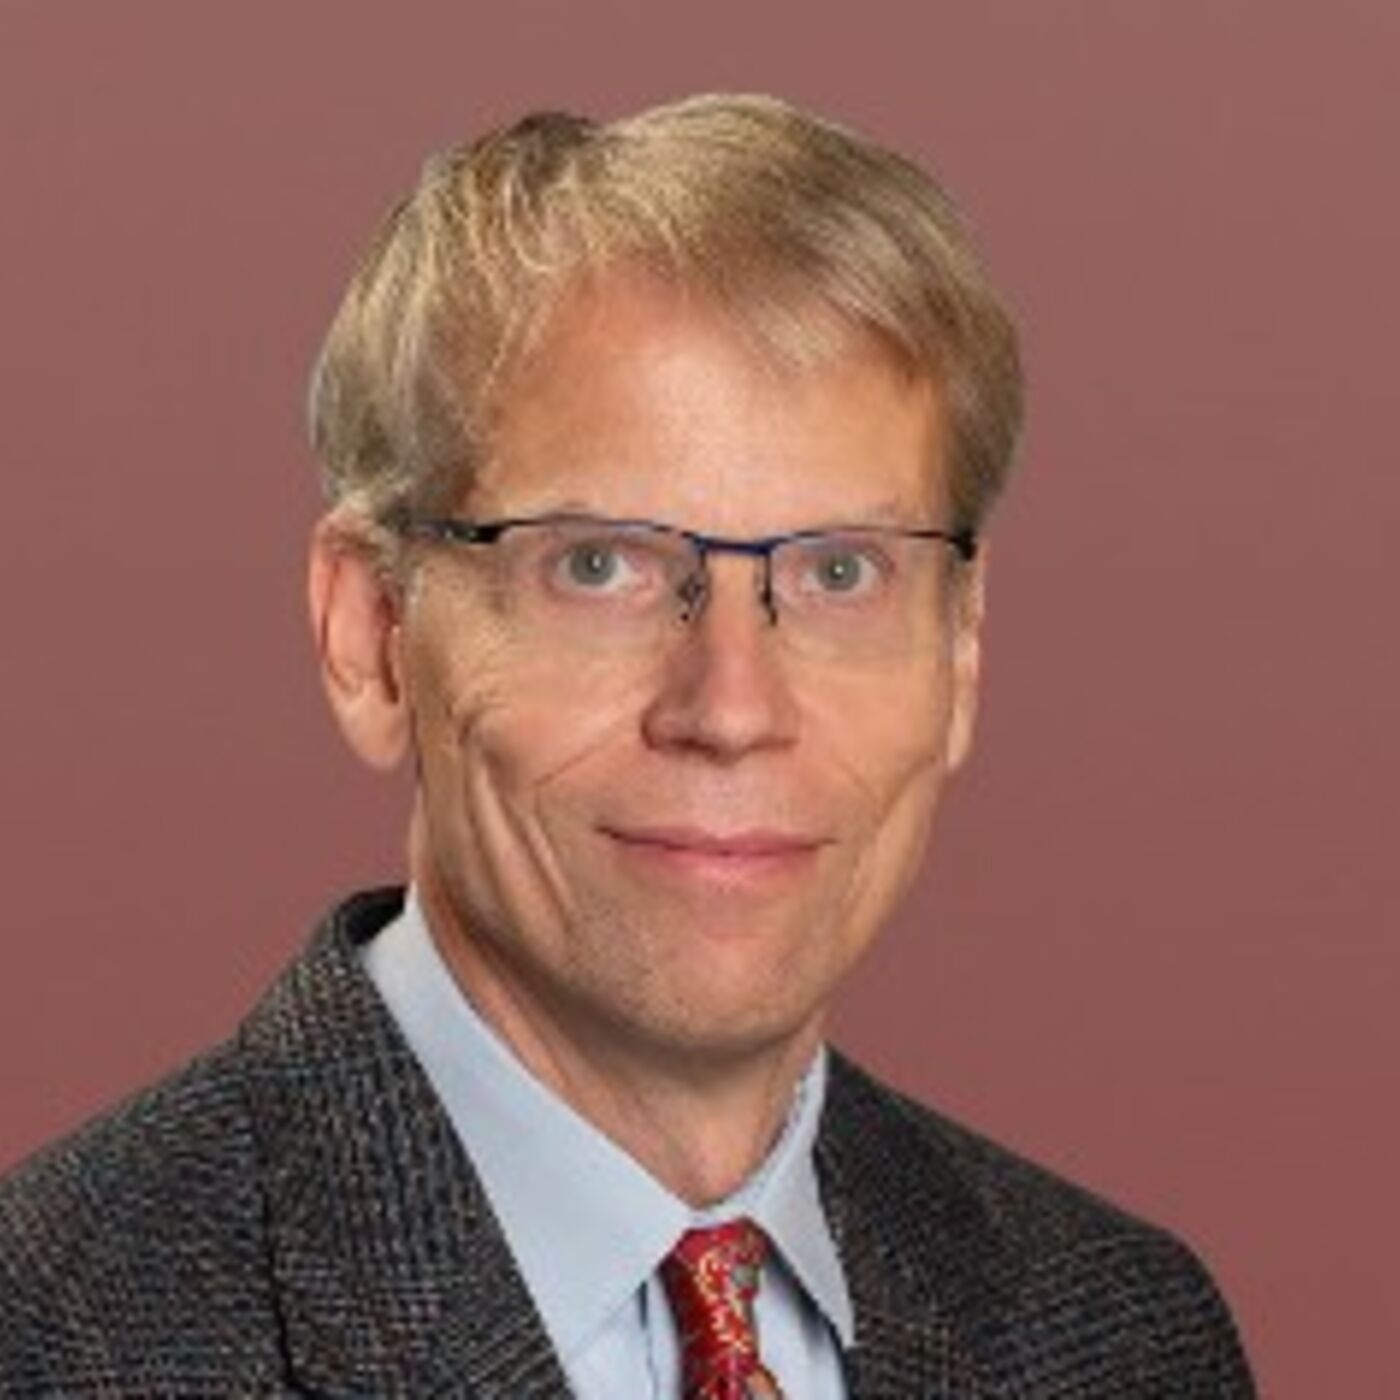 A Better Approach? Covid-19, Lockdowns and More with Harvard Biostatistician Dr. Martin Kulldorff (Episode #141)